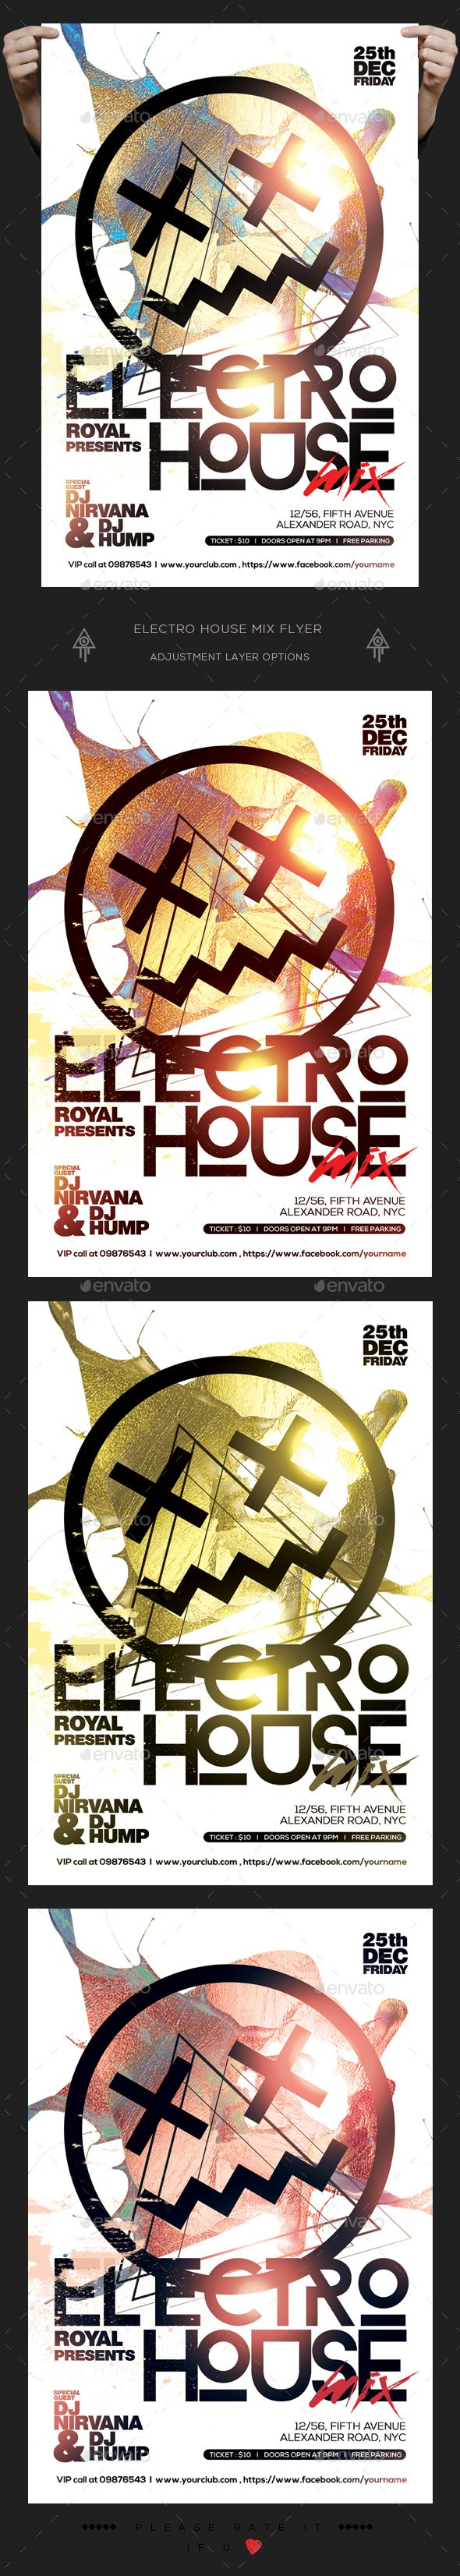 Electro House Mix Flyer — Photoshop PSD #flyer #artistic • Download ➝ https://graphicriver.net/item/electro-house-mix-flyer/19161670?ref=pxcr